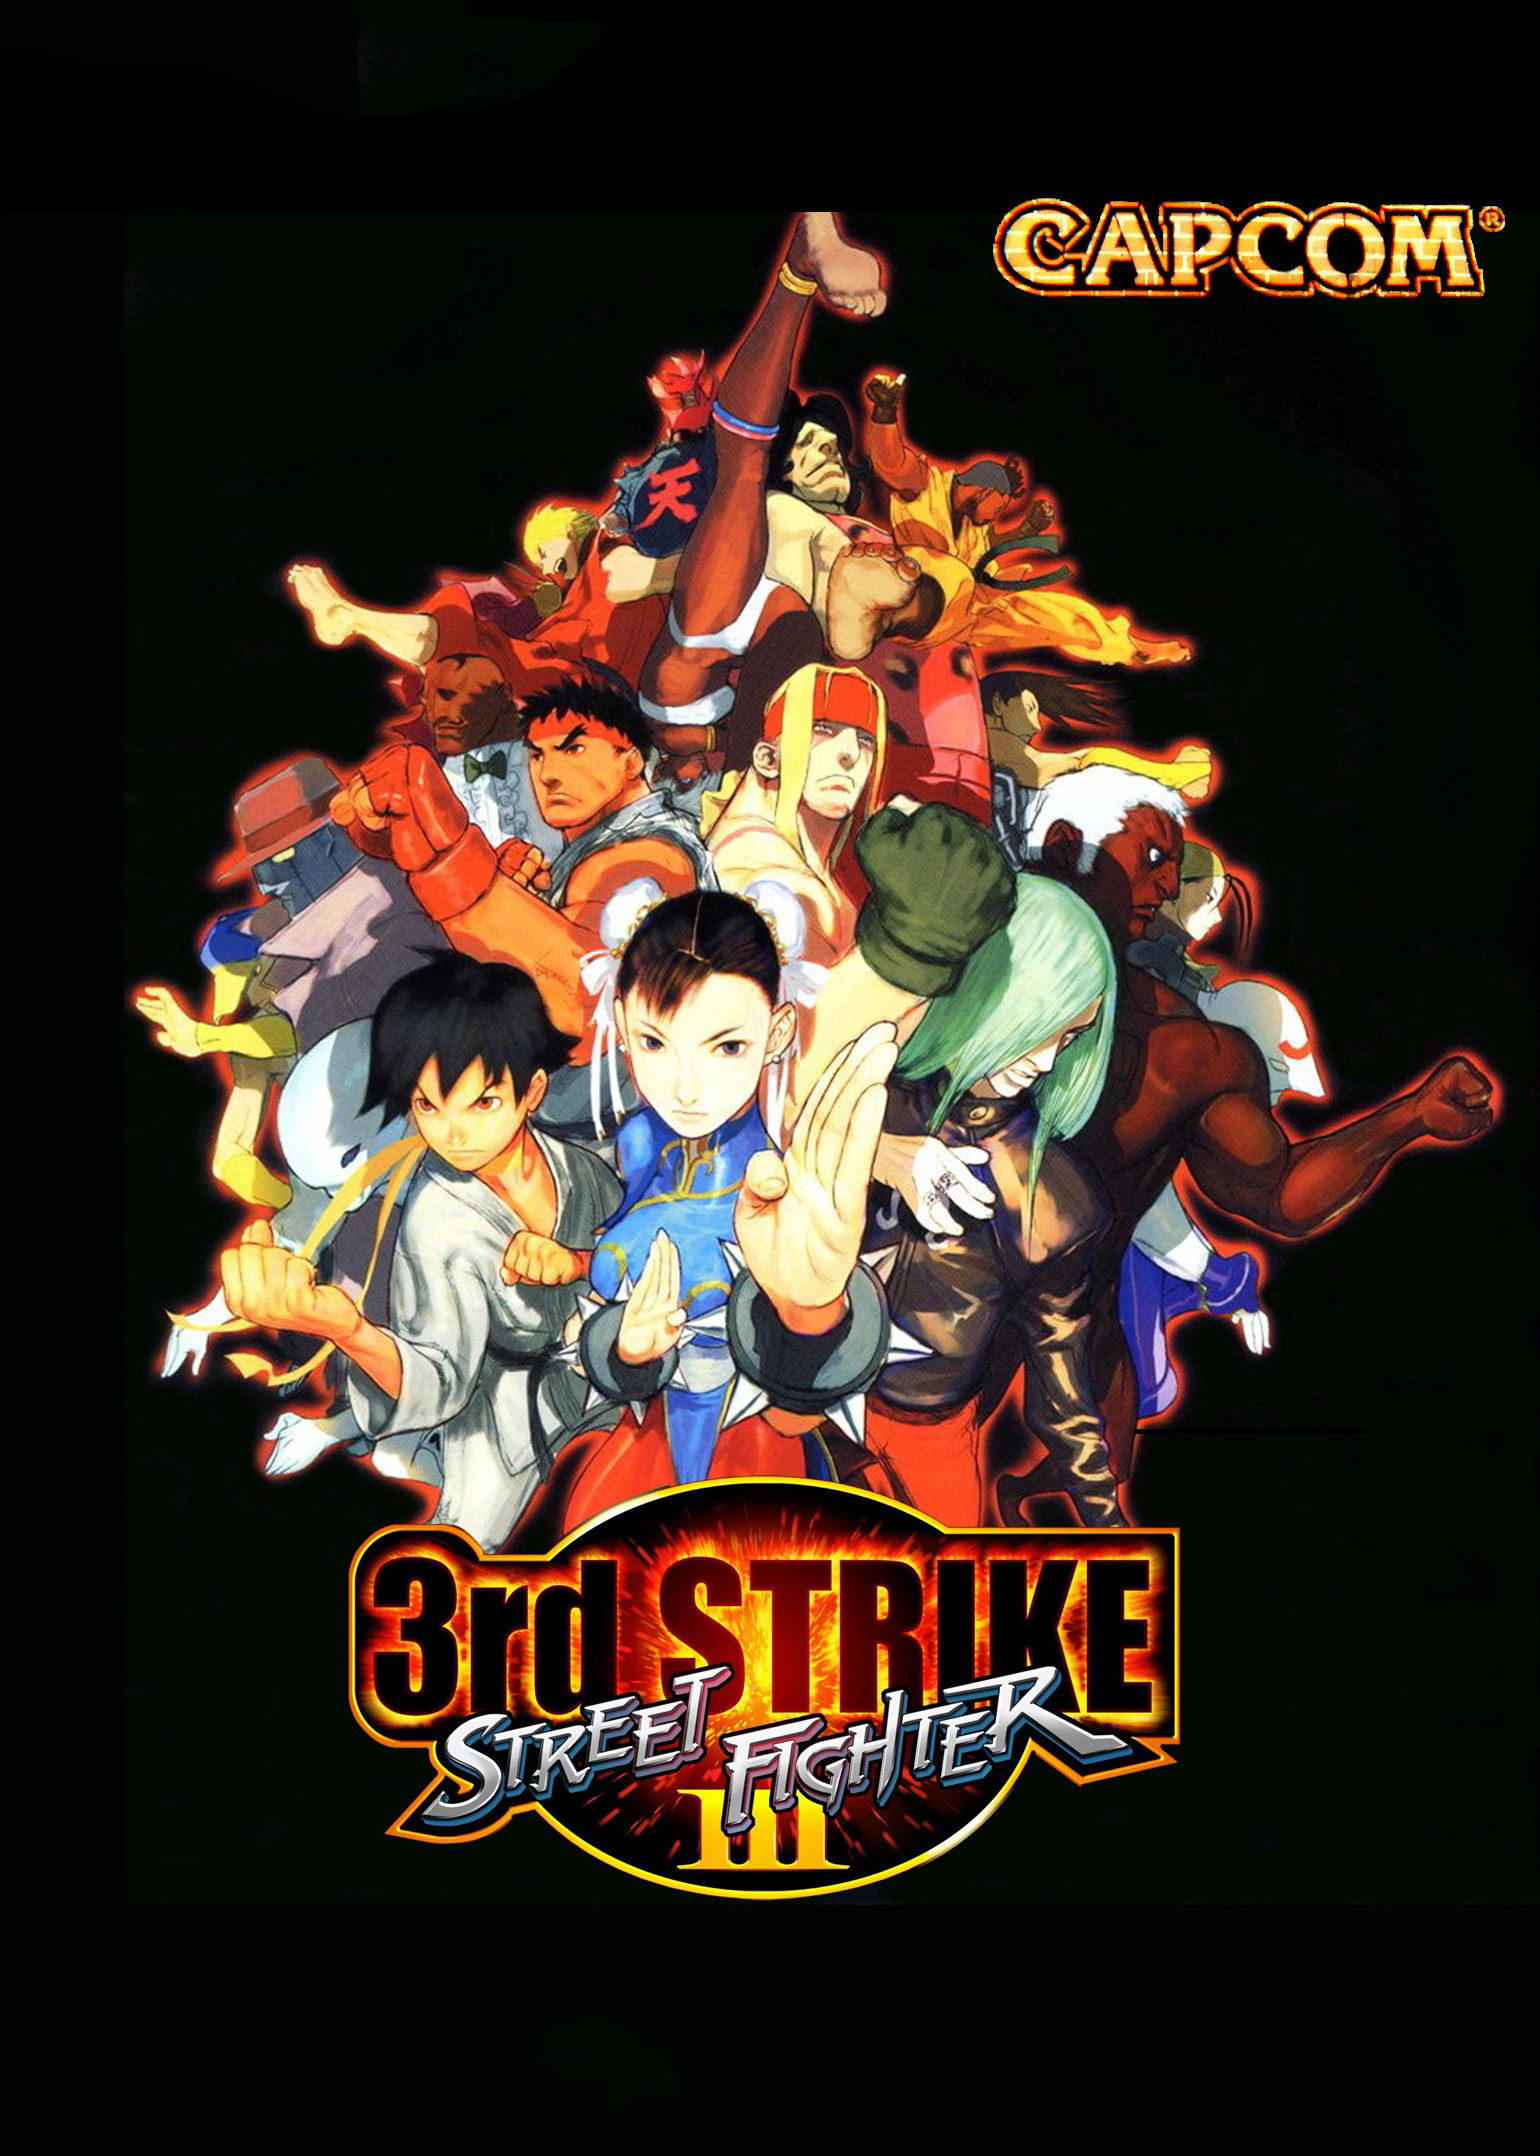 Street Fighter III: 3rd Strike: Fight for the Future ...